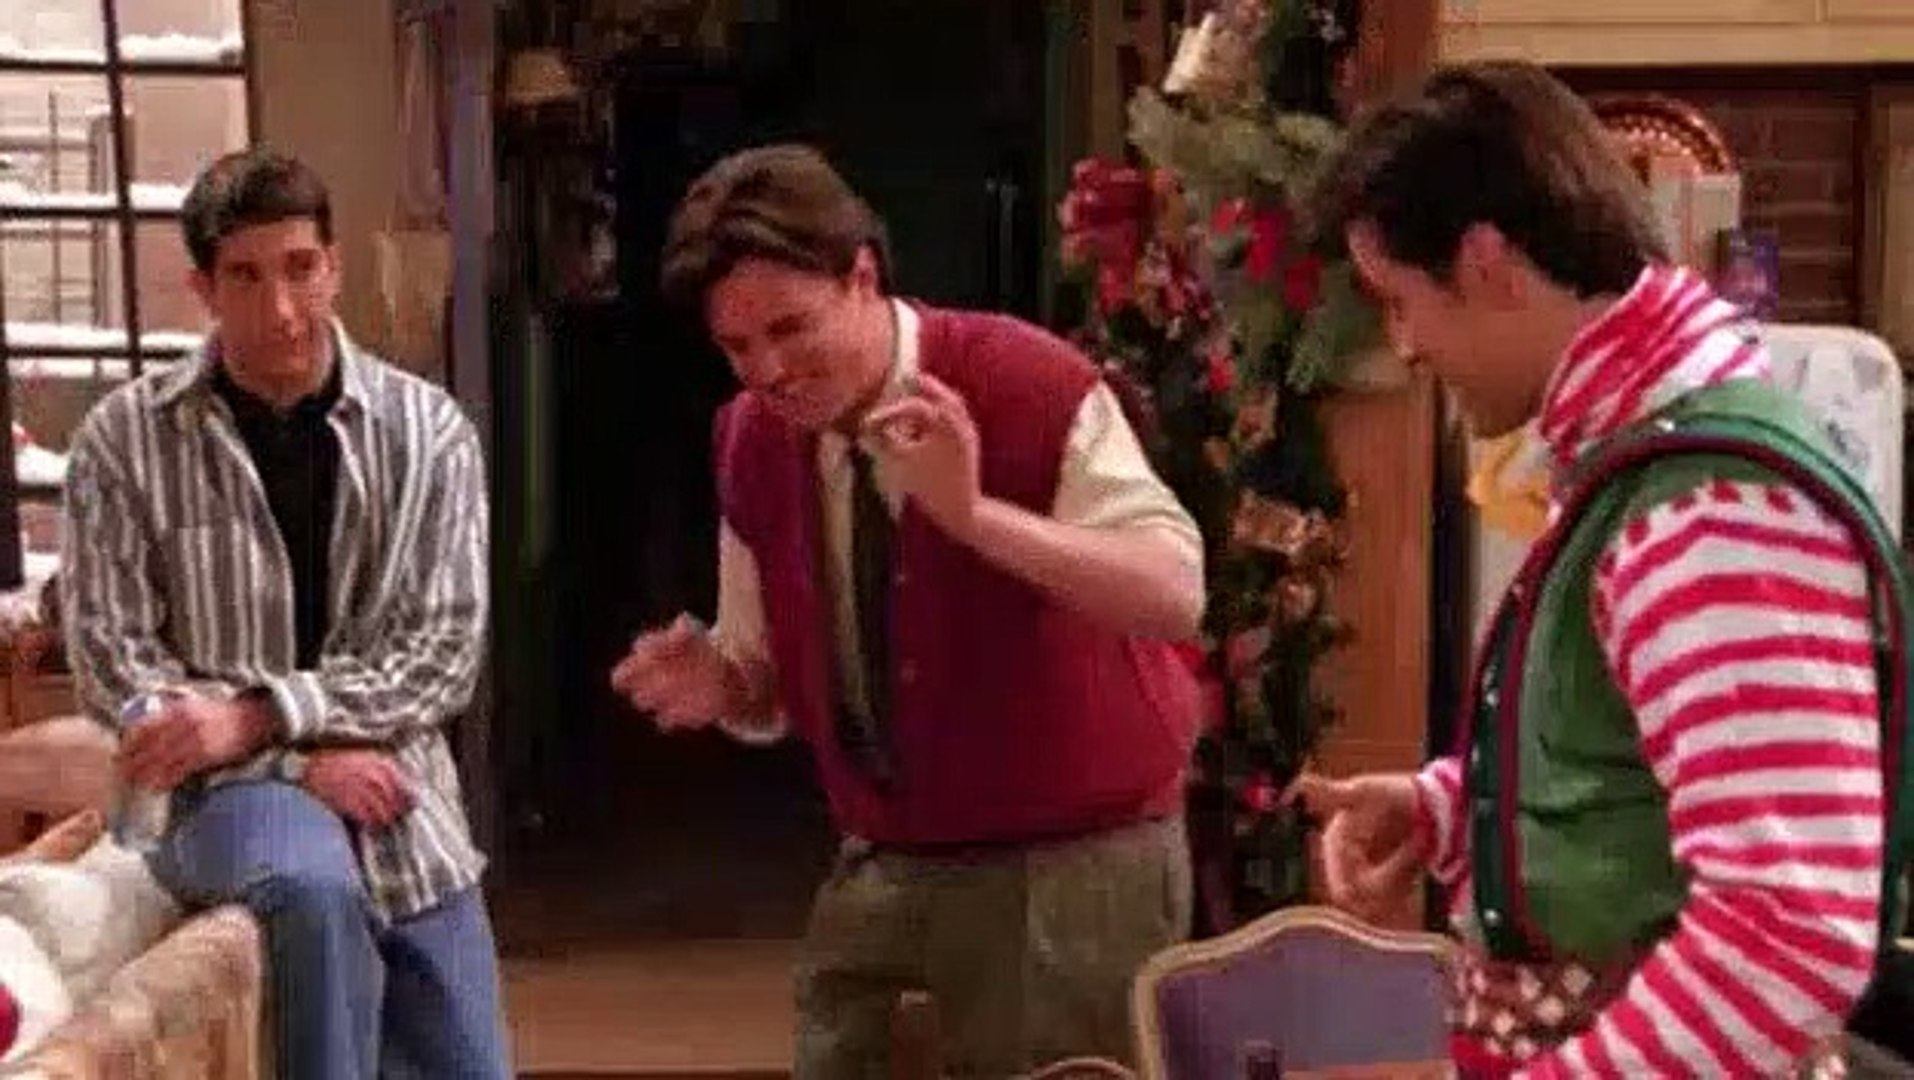 Friends S01E10 - The One with the Monkey